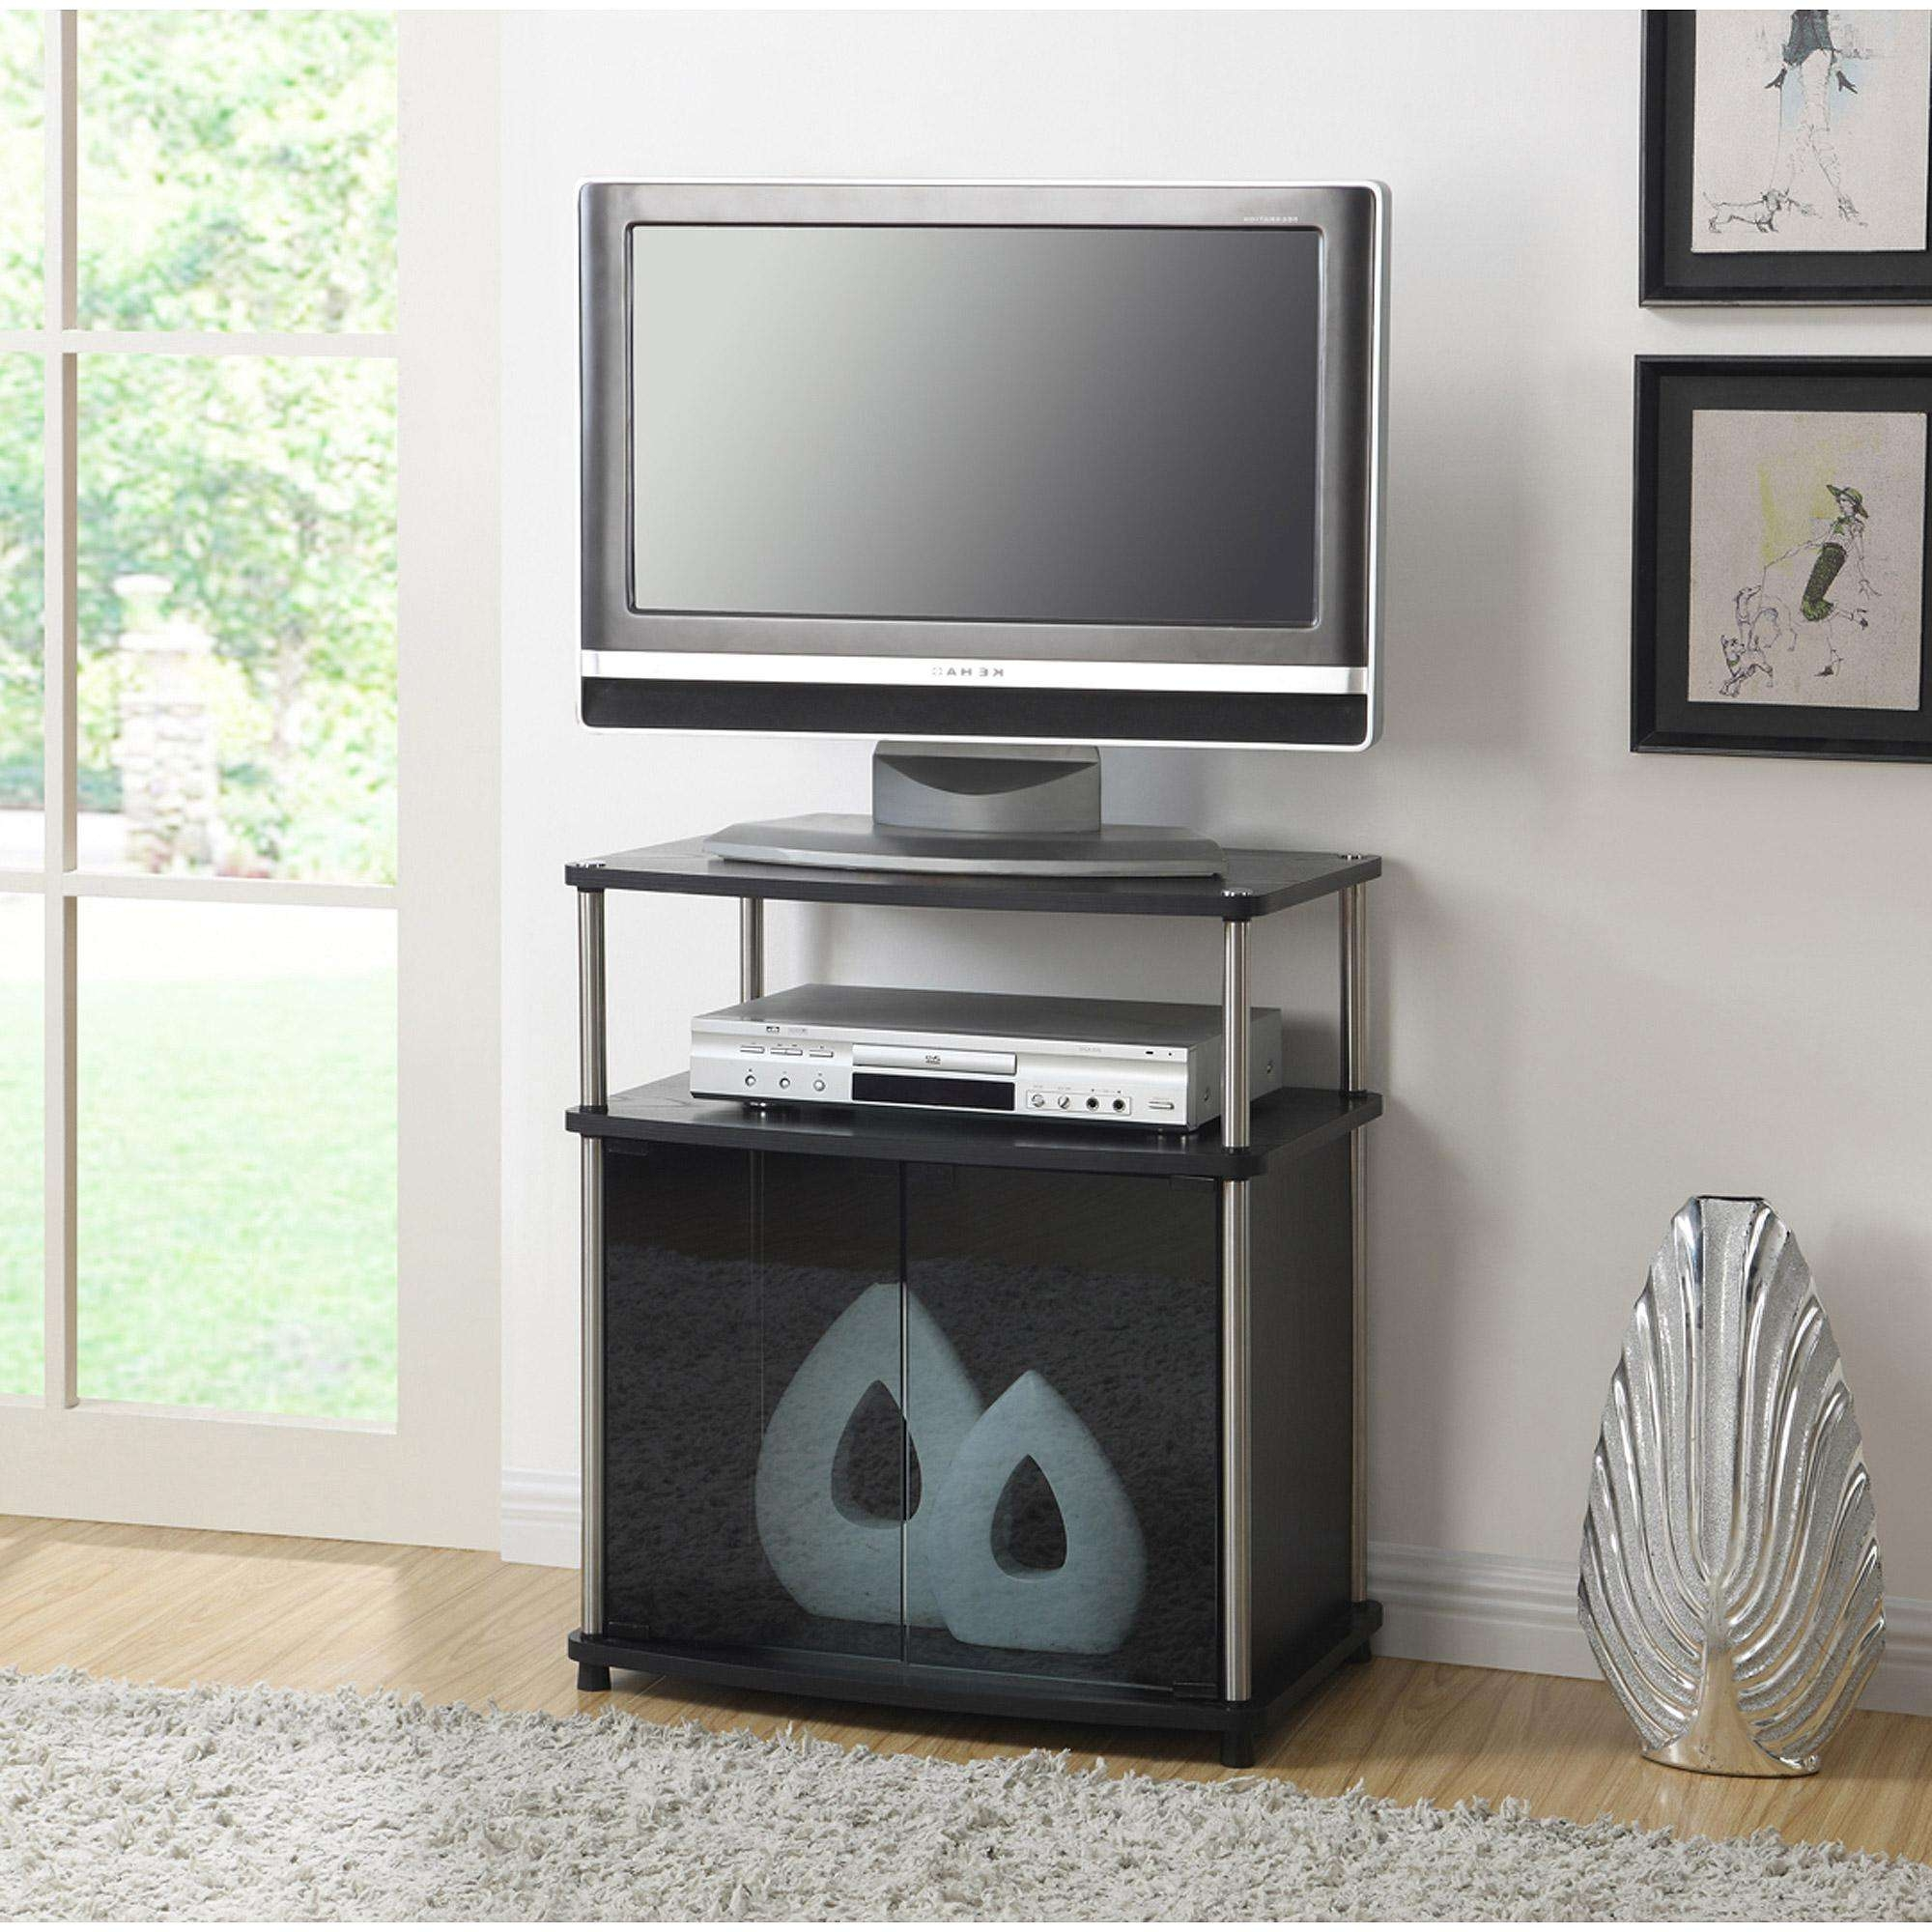 Black Tv Stands With Glass Doors Gallery – Doors Design Ideas With Regard To Tall Black Tv Cabinets (View 12 of 20)